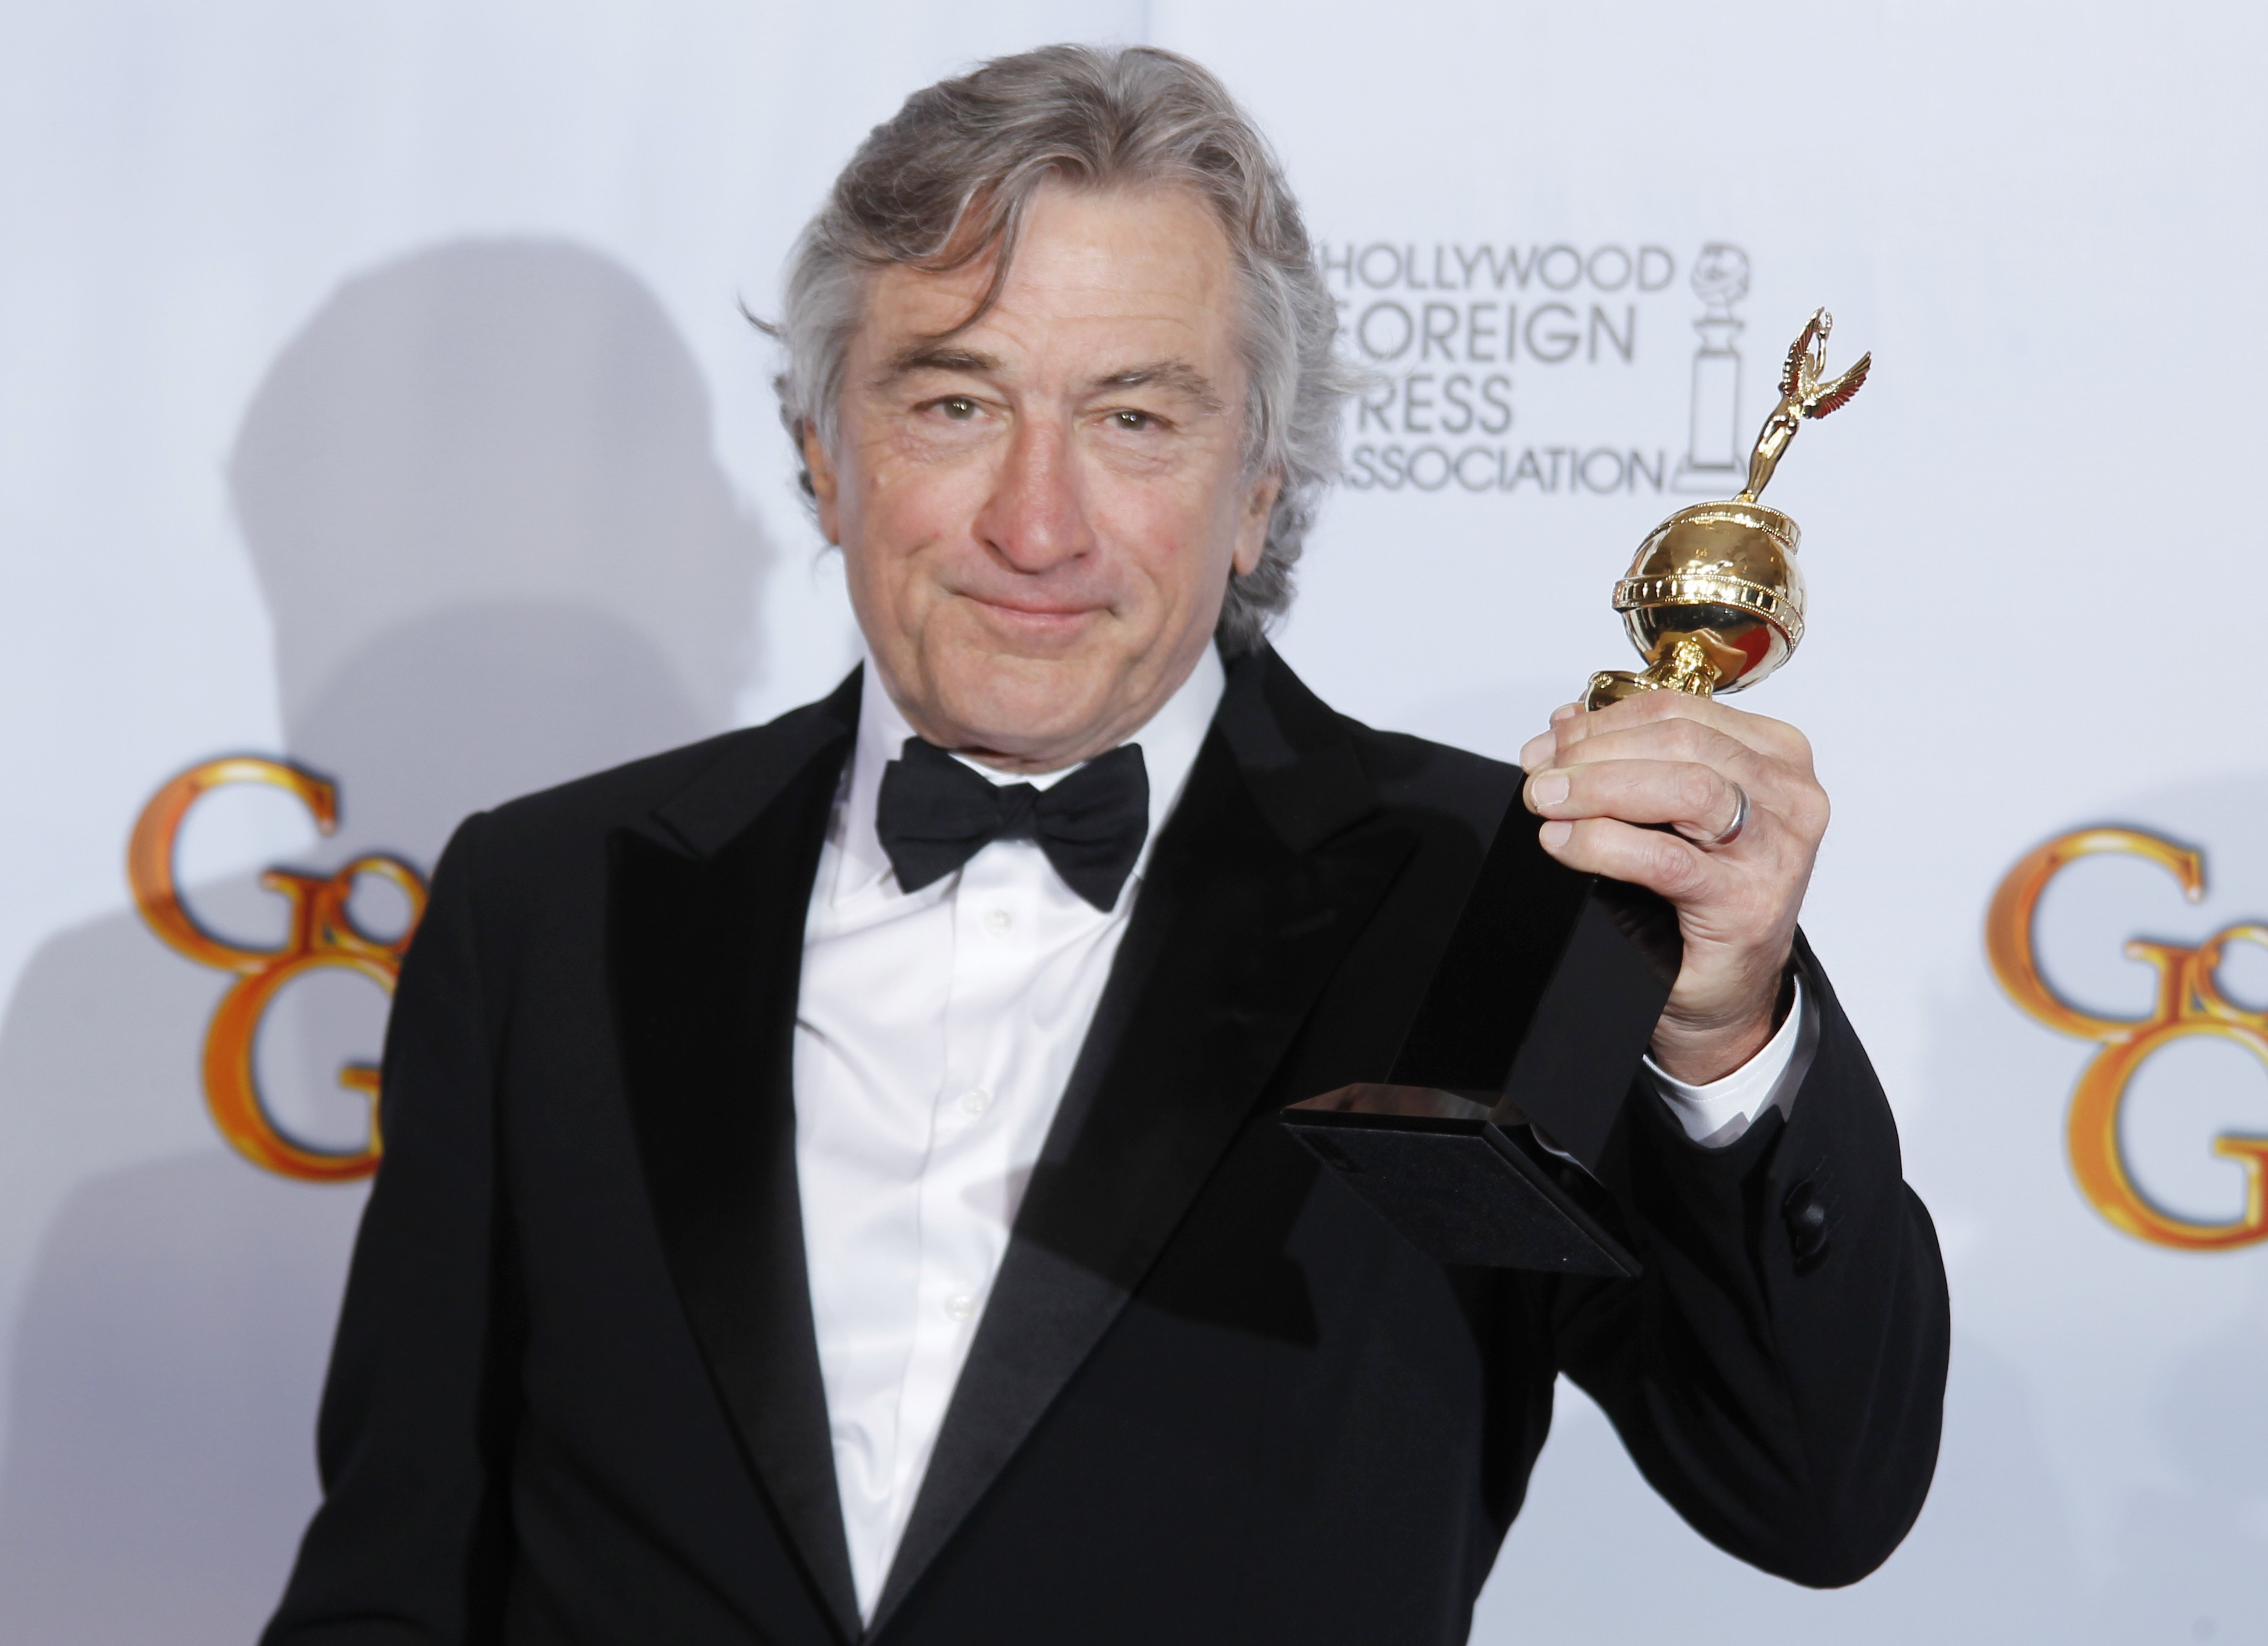 Robert De Niro has beaten Clint Eastwood and Leonardo Di Caprio to land the title of greatest actor ever